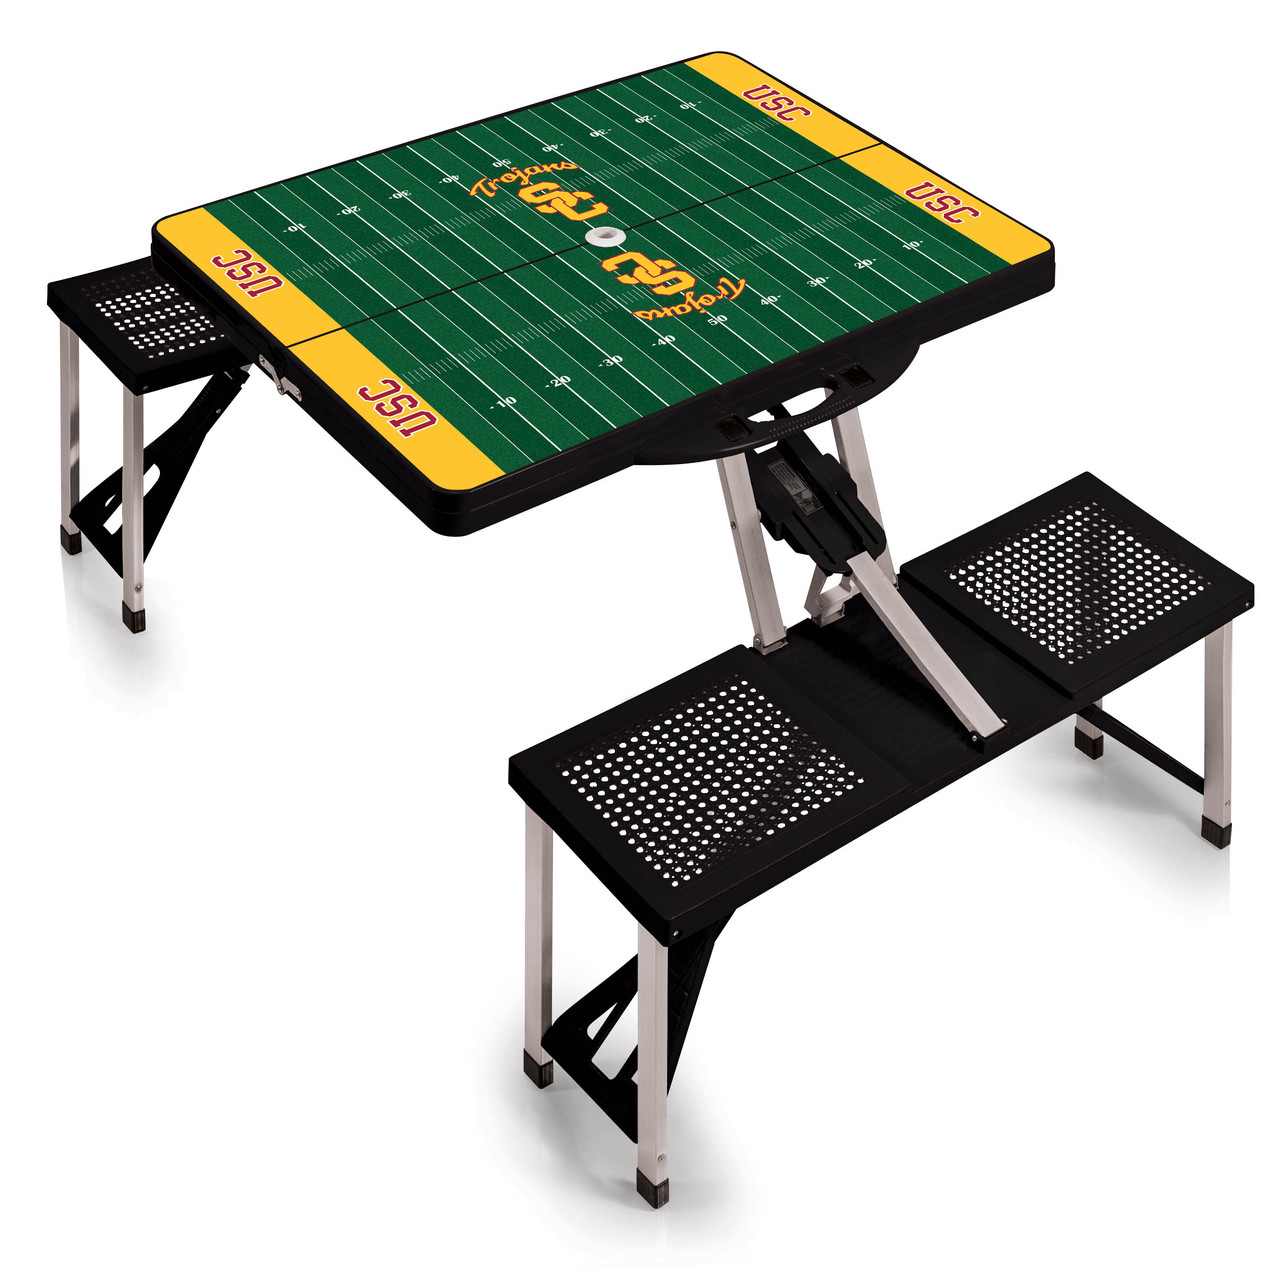 Picnic Table Sport - University of Southern California